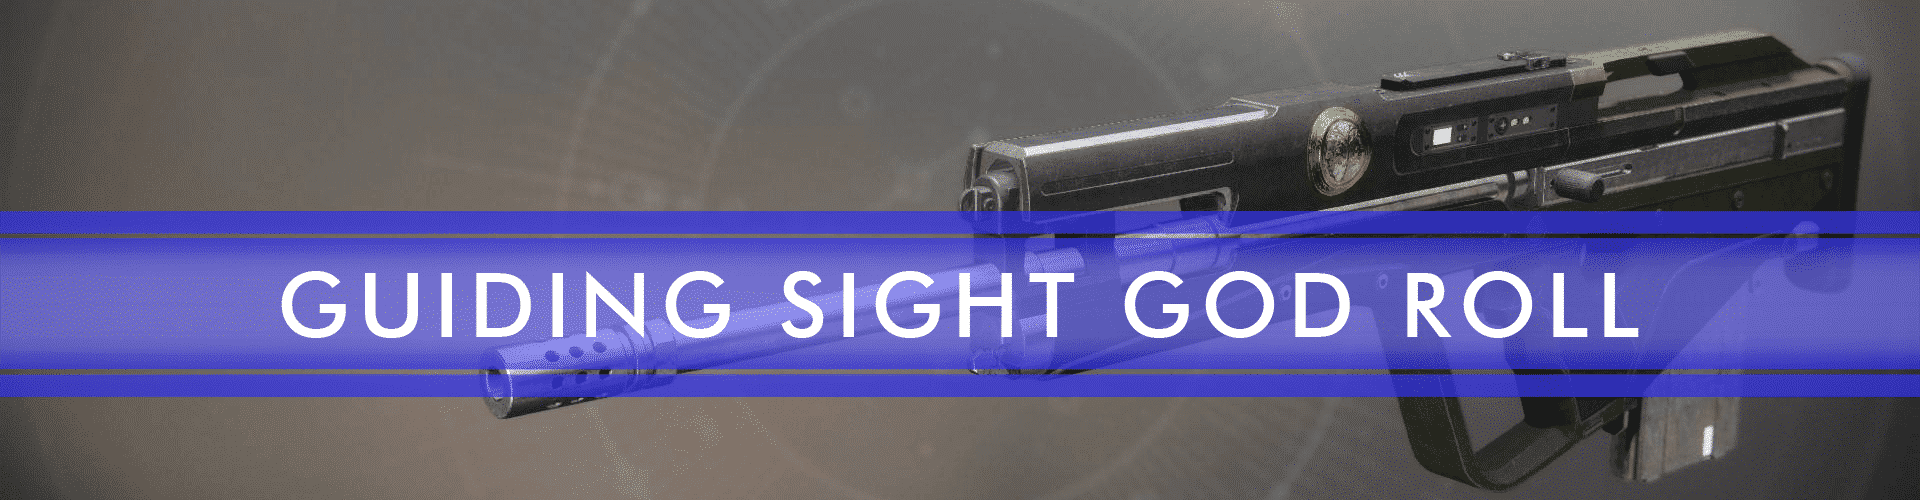 guiding sight god roll boost